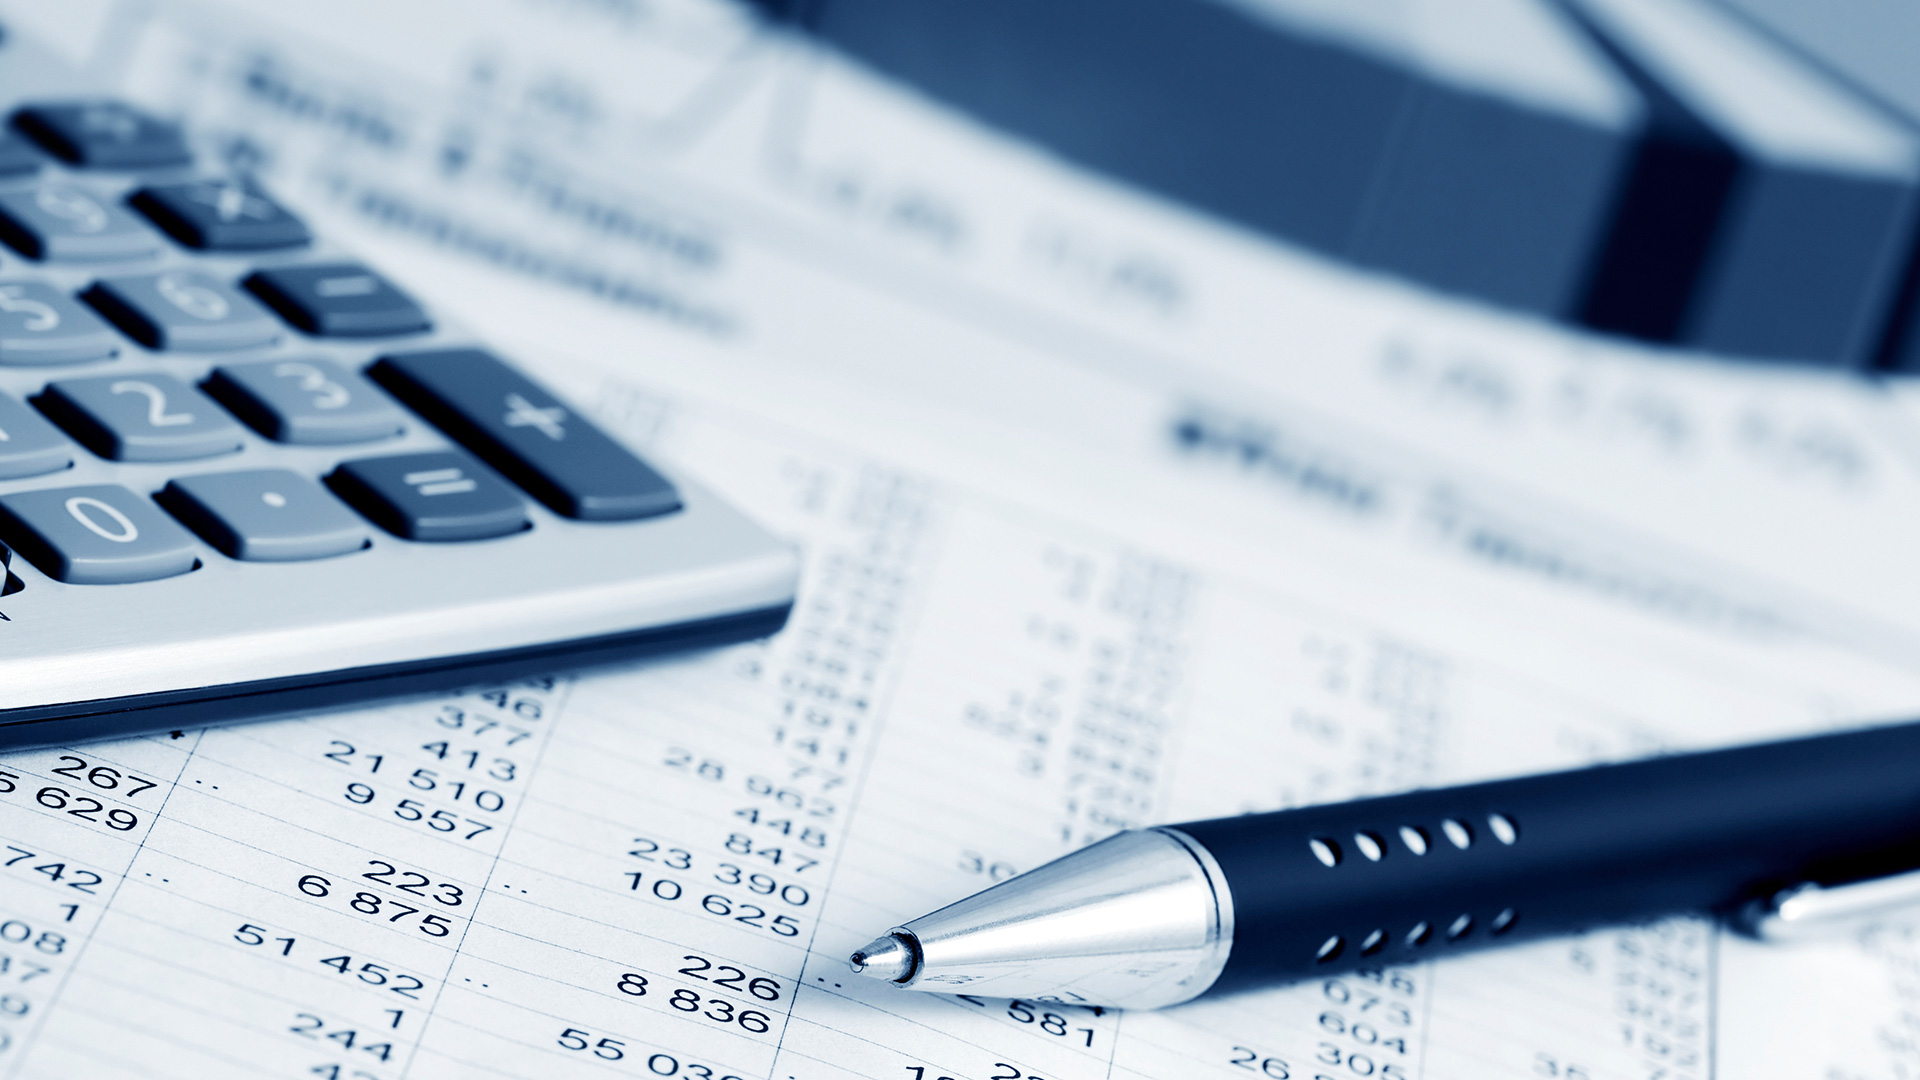 Thousand Oaks Payroll Services